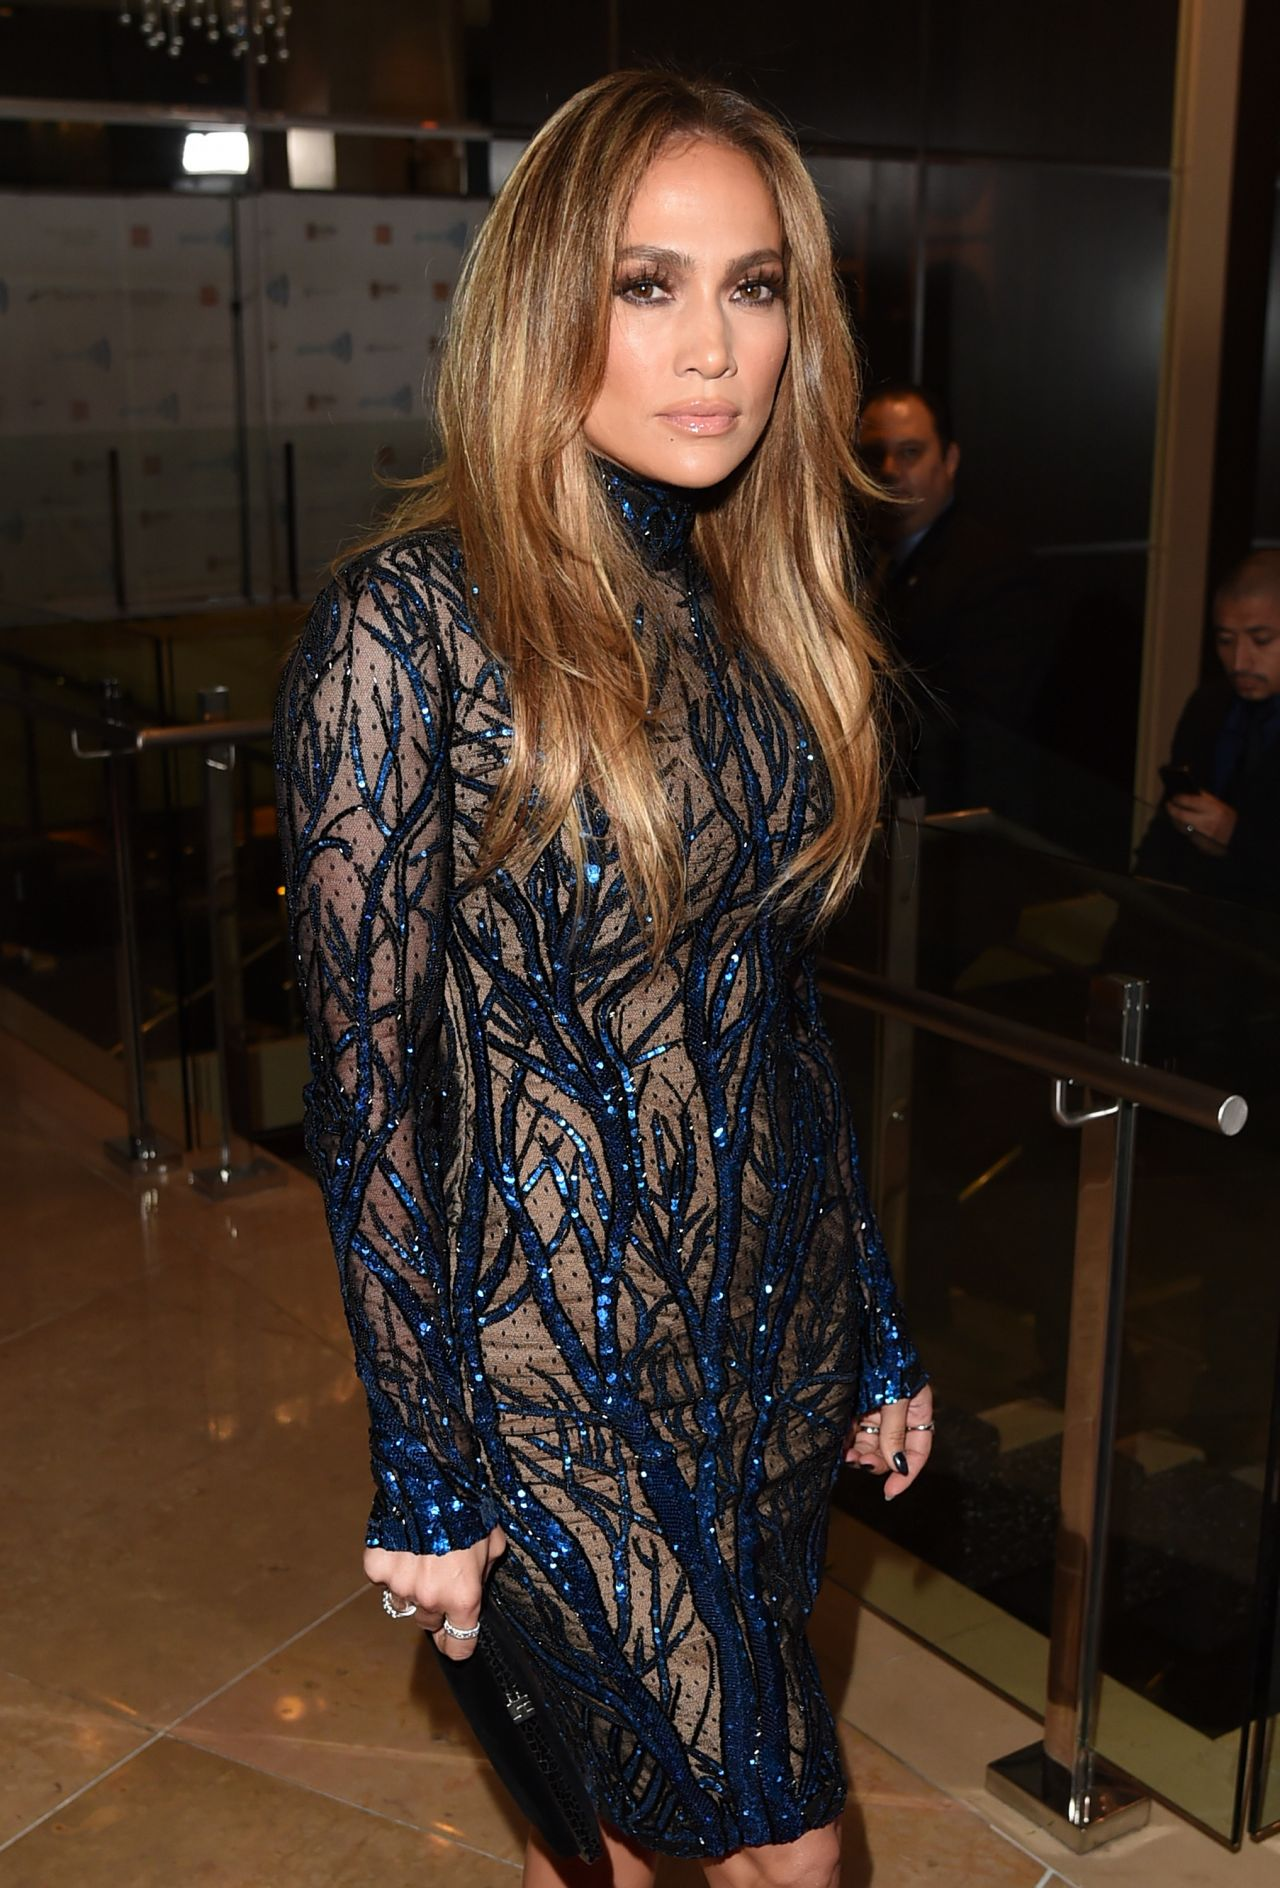 Jennifer Lopez Wearing Zuhair Murad Dress 2014 GLAAD Media Awards In Los Angeles